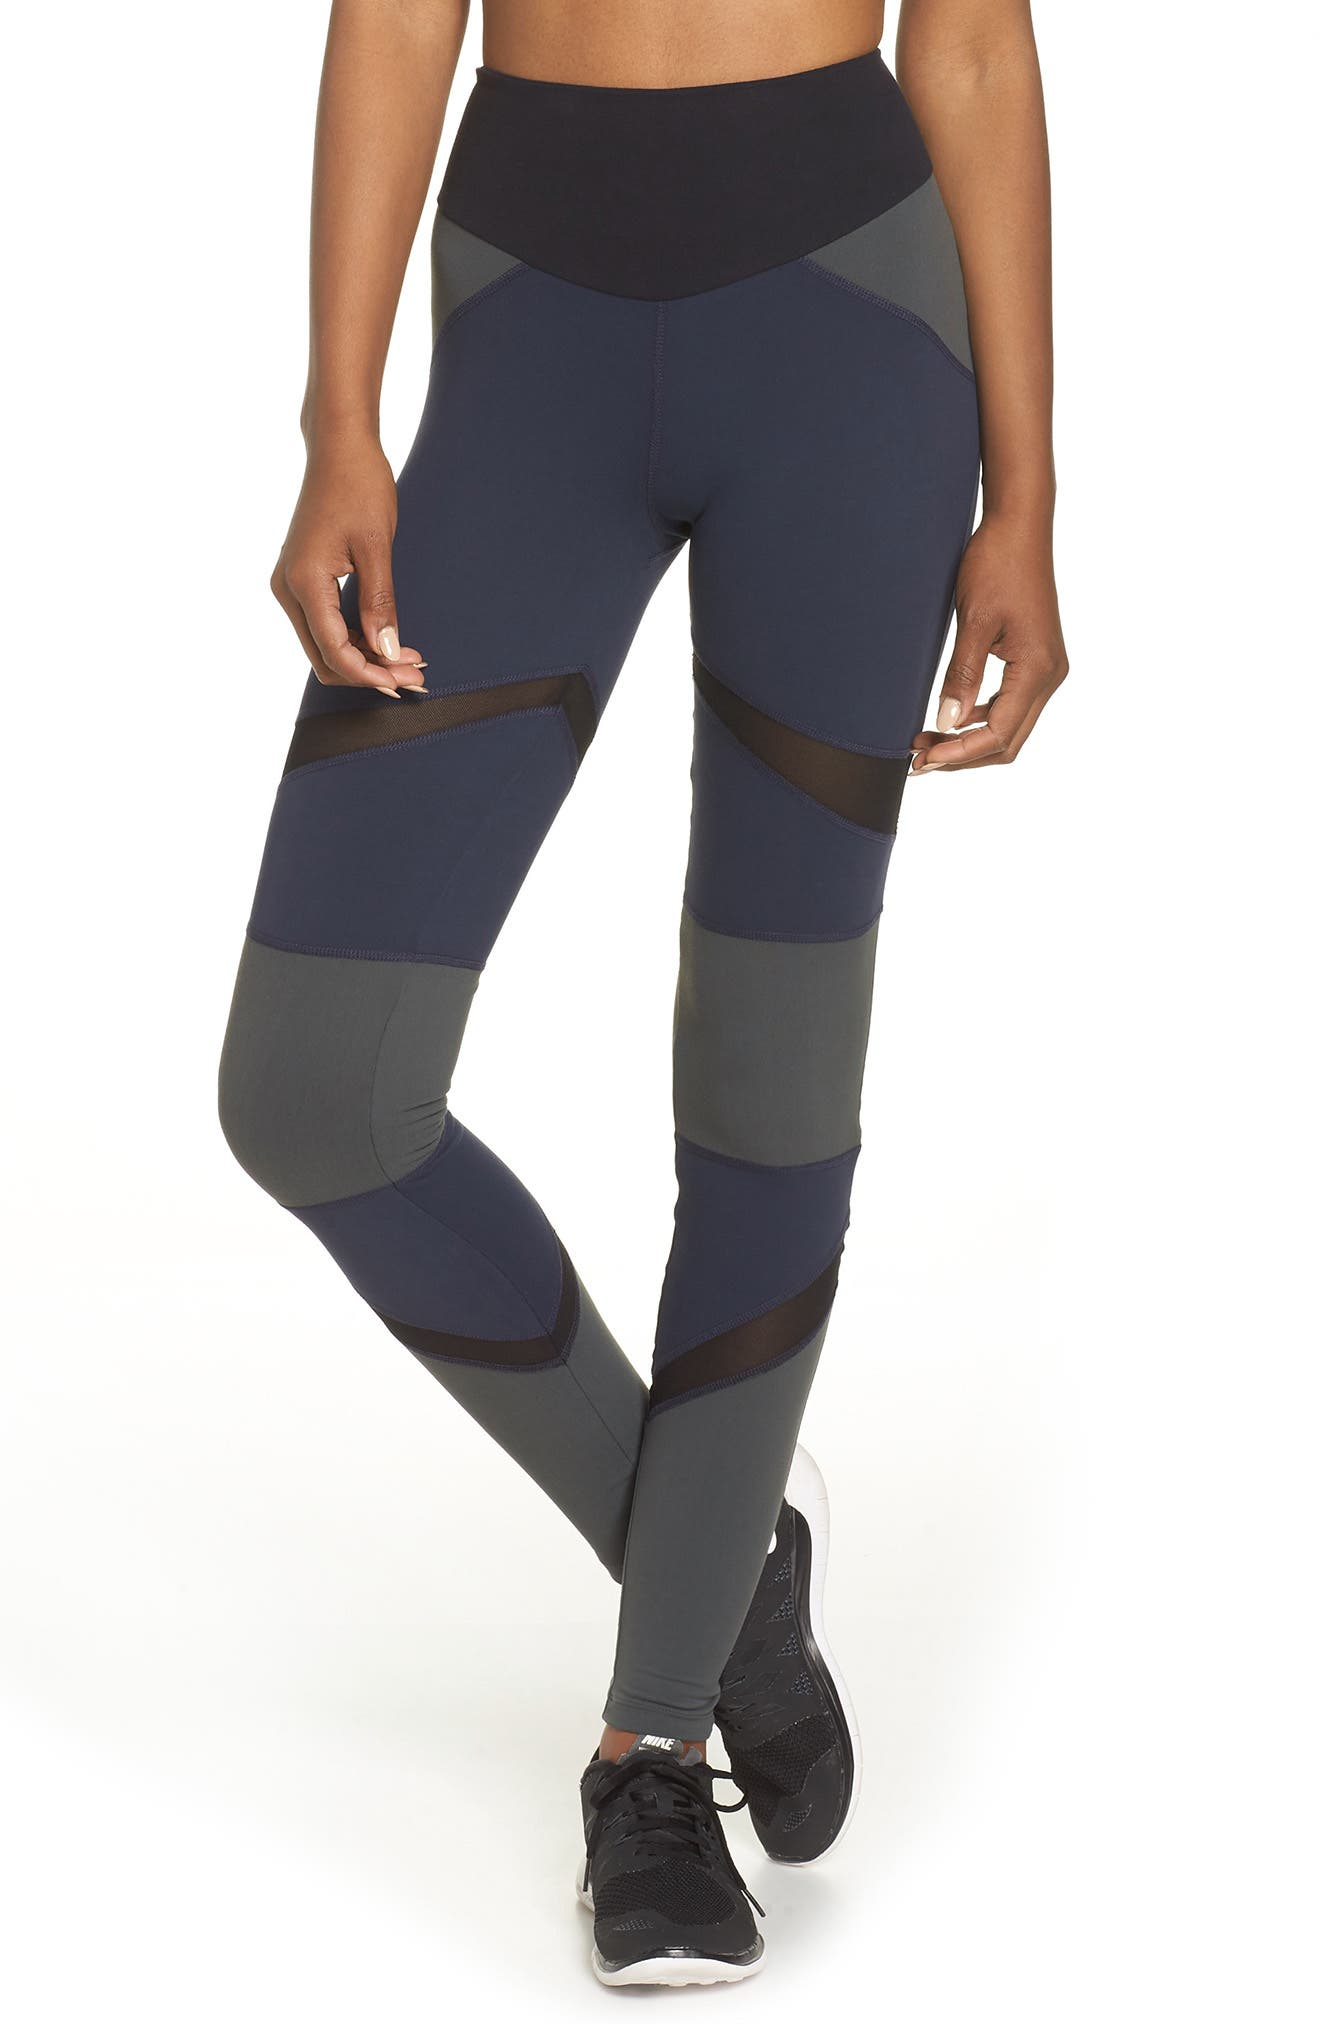 BoomBoom Athletica Brushed Tricolor Panel Leggings,                         Main,                         color, Navy/ Black/ Green